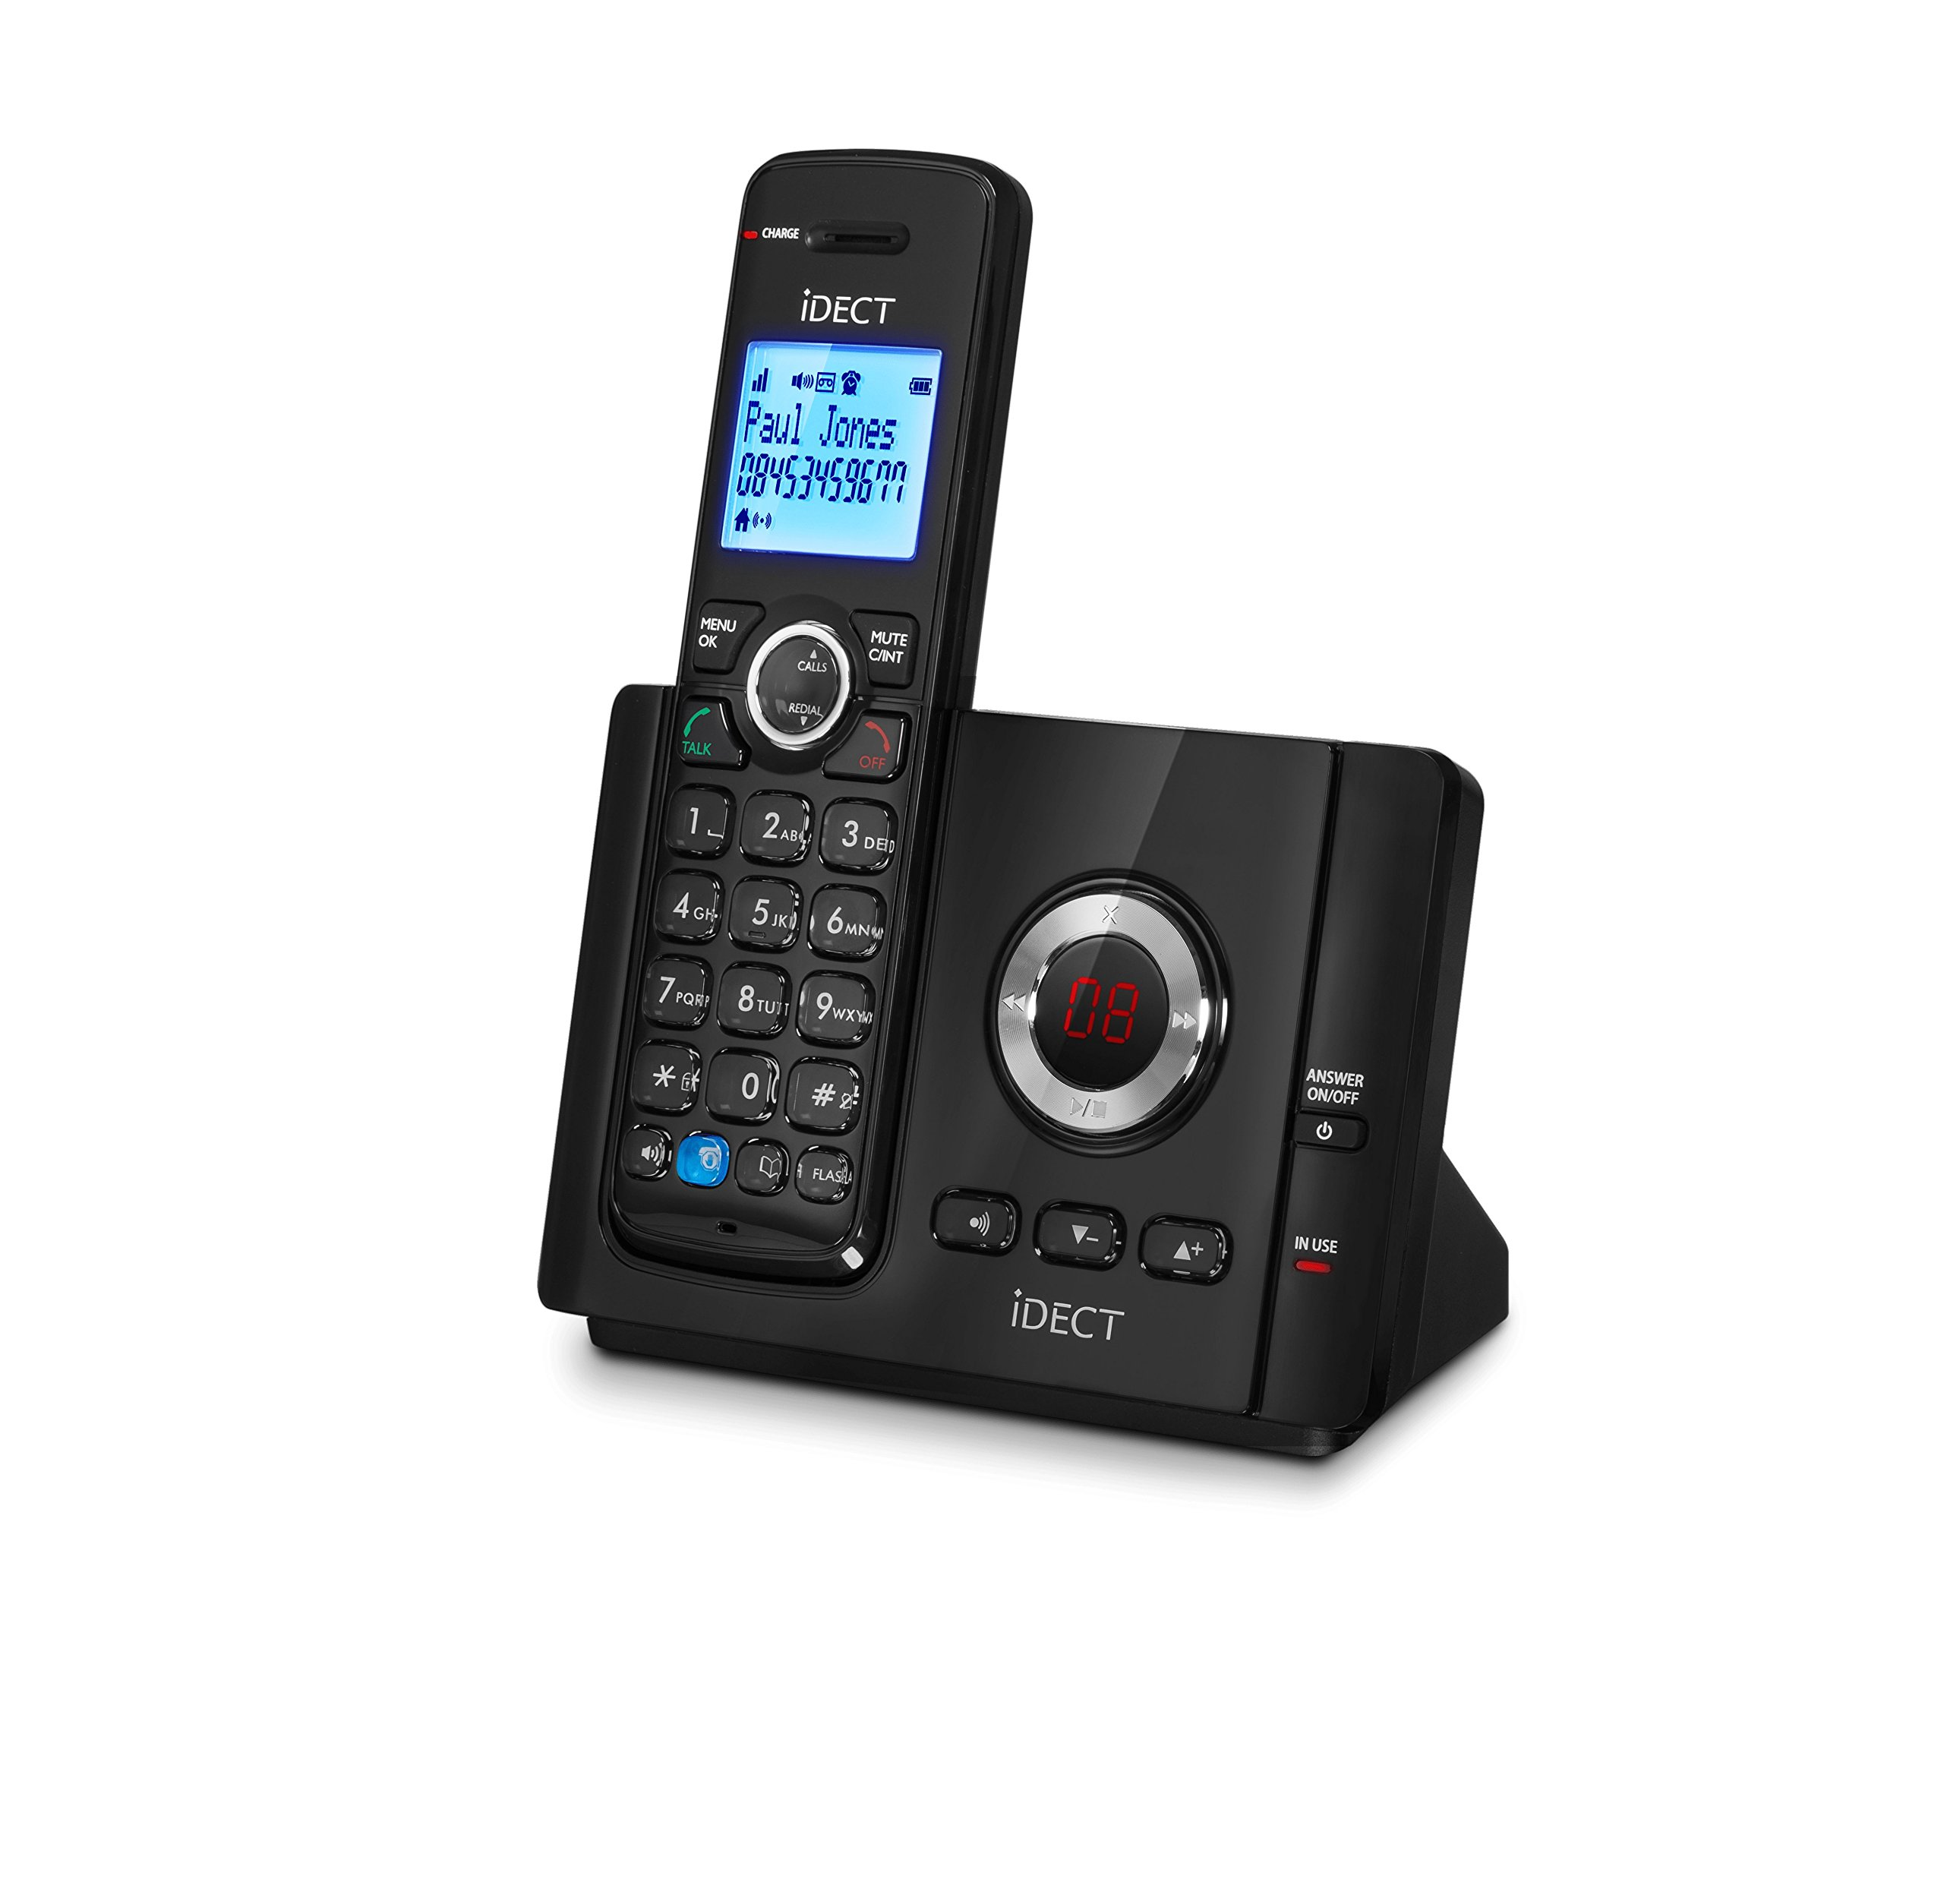 iDECT Vantage 9325 Home Phone with Call Blocker and Answer Machine Single Black